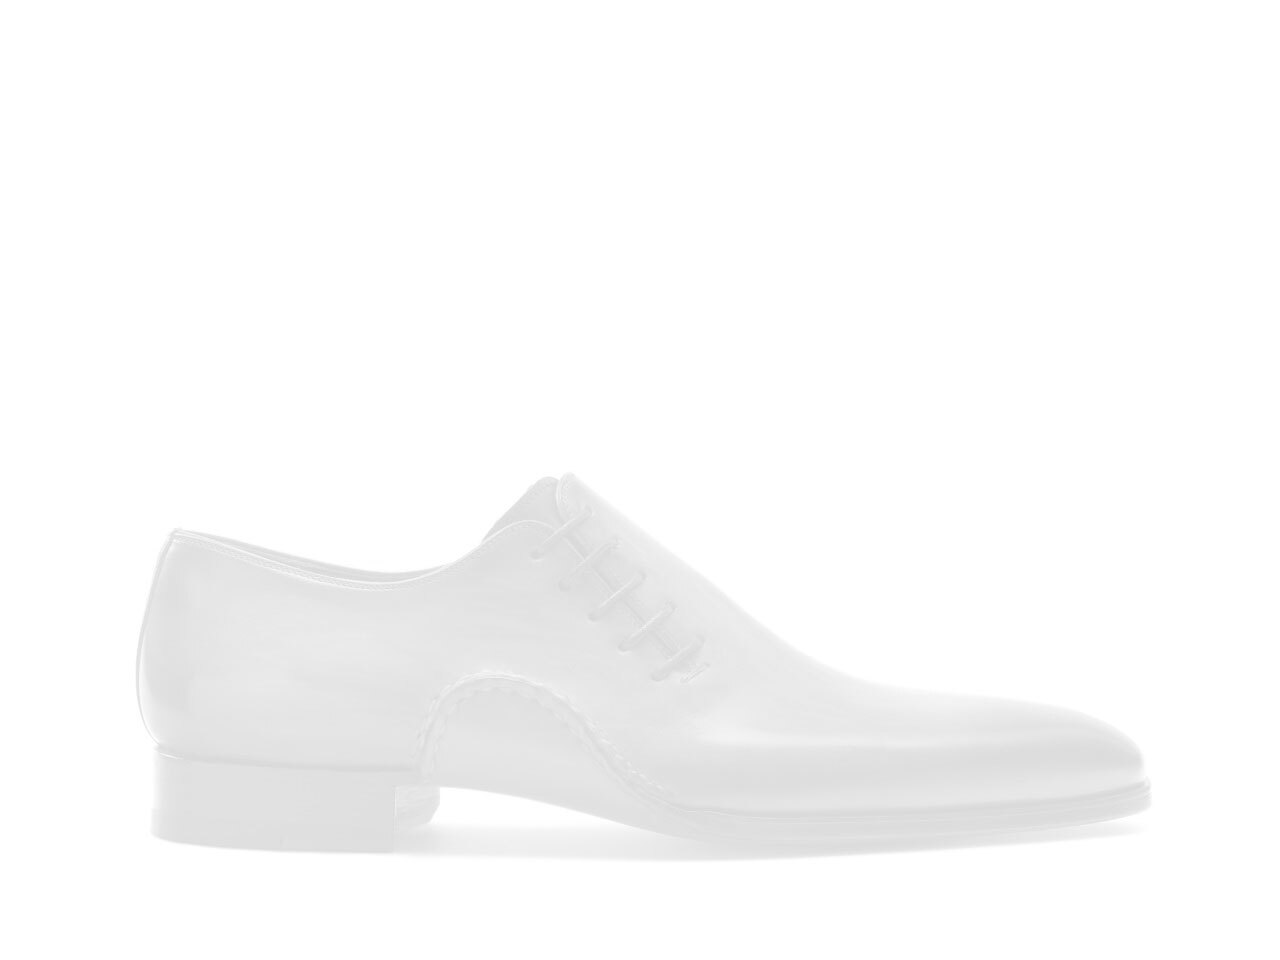 Side view of the Magnanni Elonso Lo Cognac Men's Sneakers